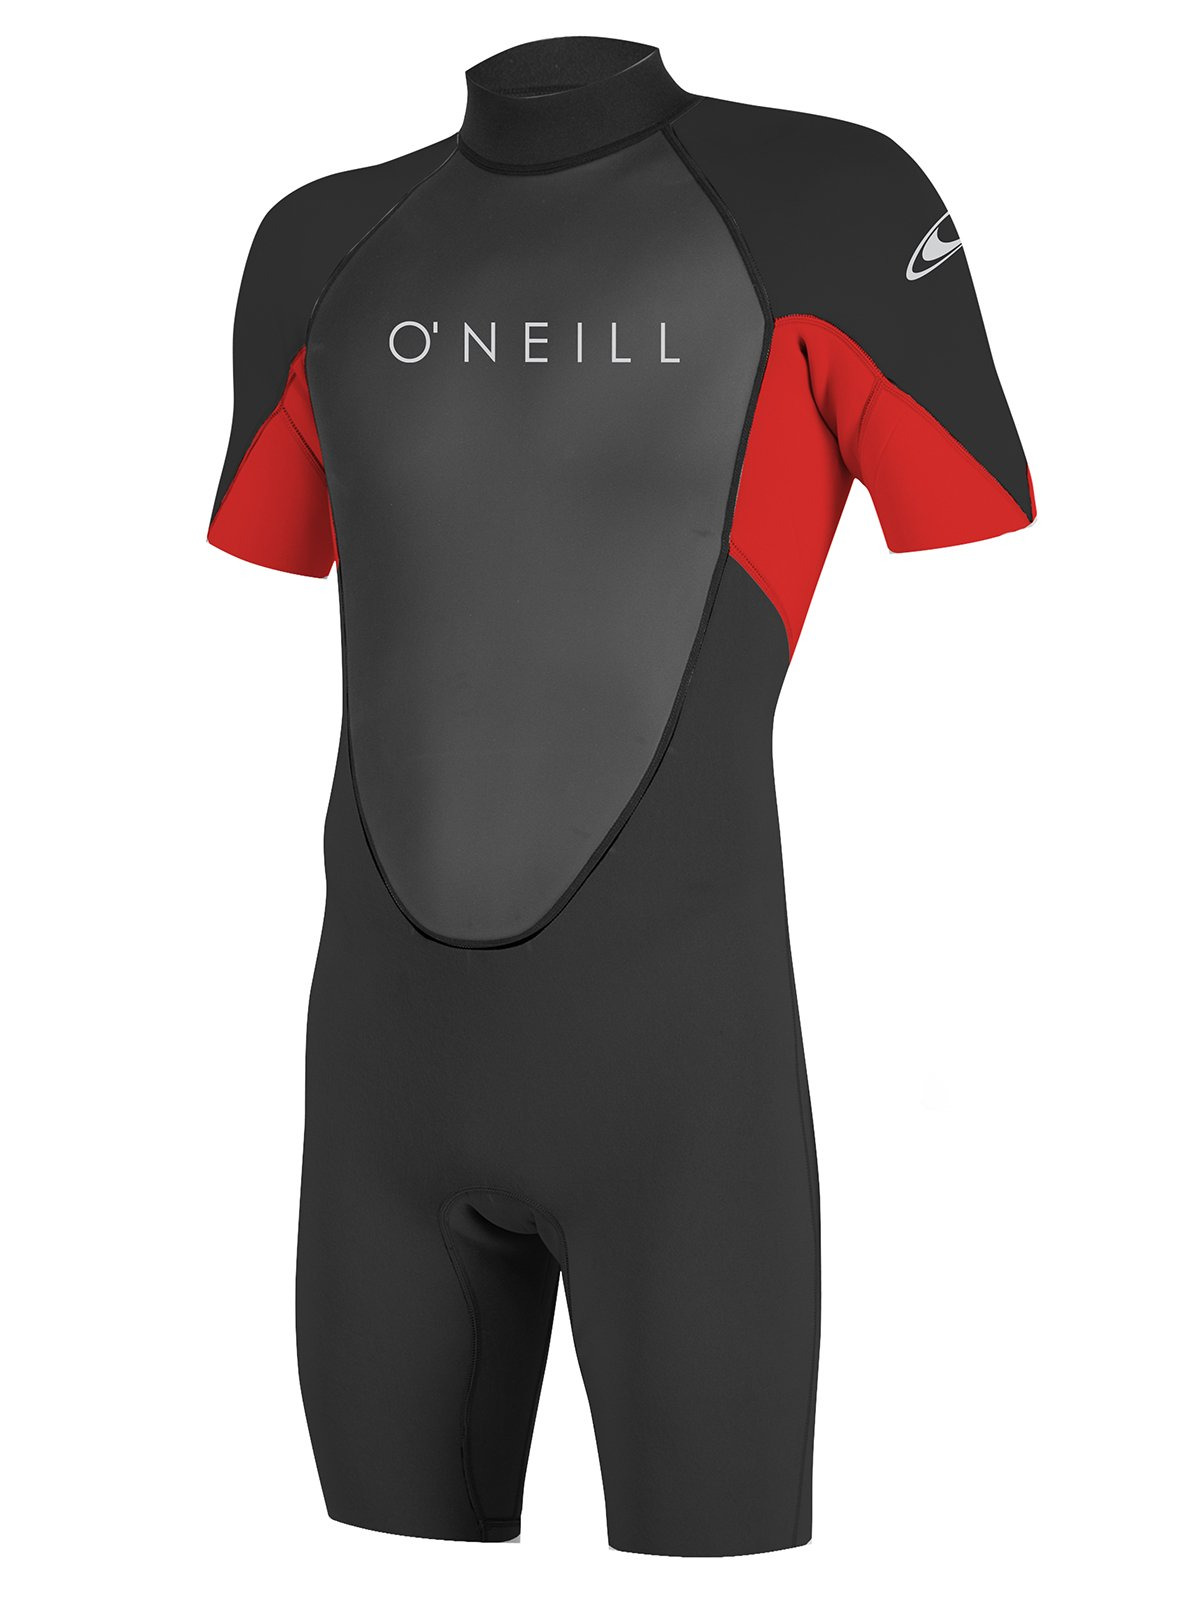 O'Neill Reactor-2 men's spring Medium Tall Black/red (5124A) by O'Neill Wetsuits